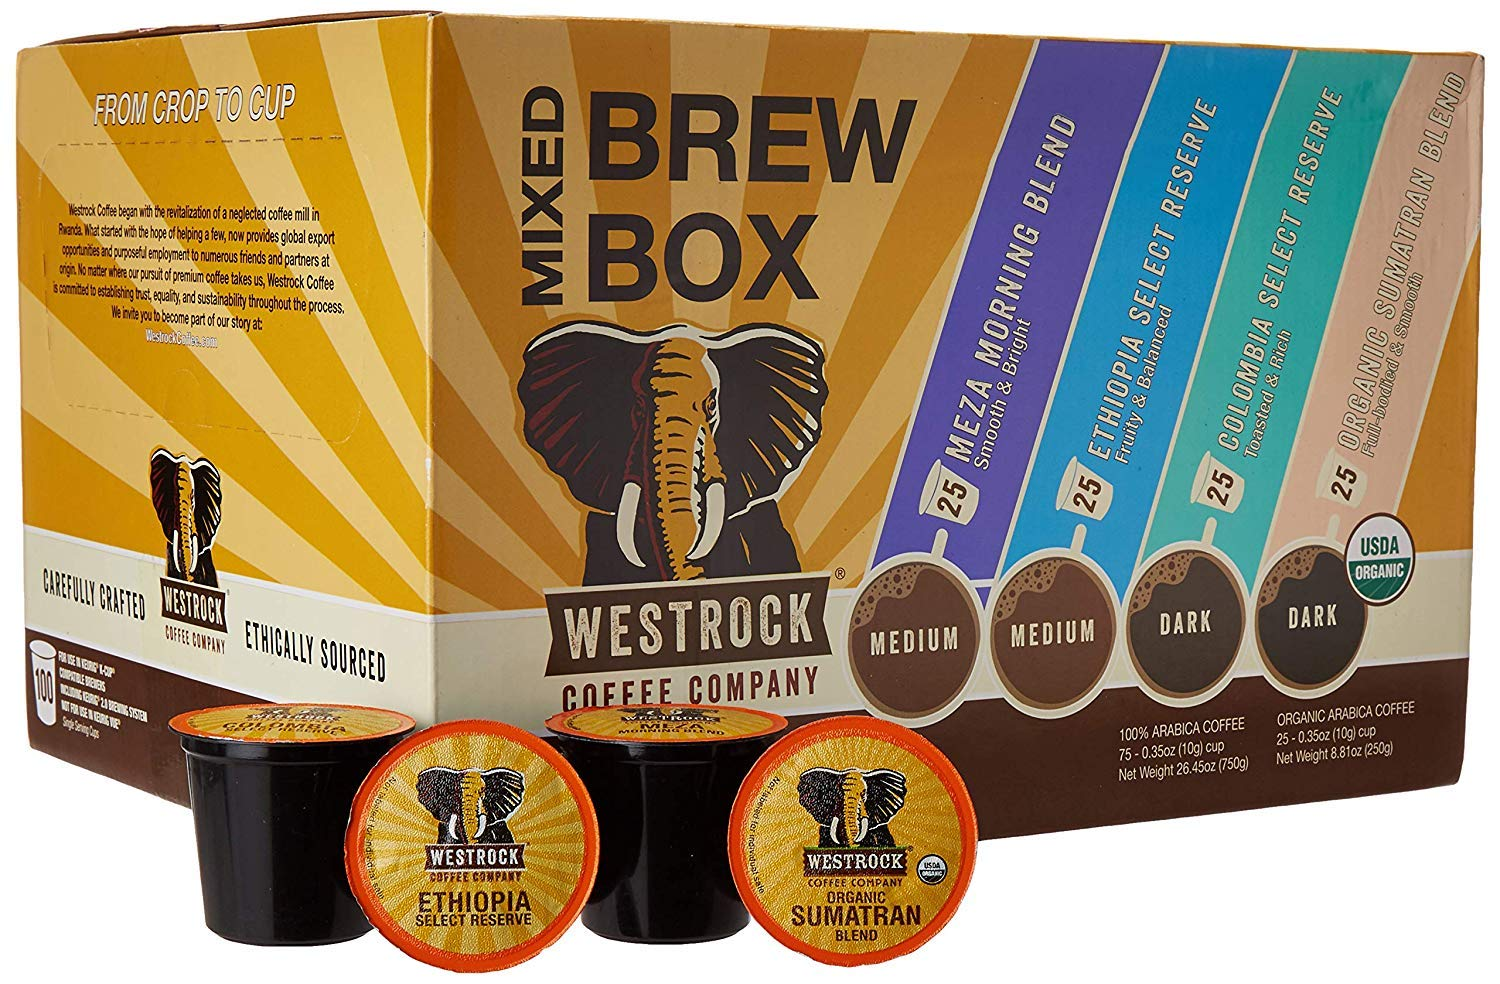 Westrock Coffee Company Mixed Brew Box 2.0 SS Cups 100 count (25ea Meza Morning Blend, Organic Sumatran, Ethiopian, Colombian)